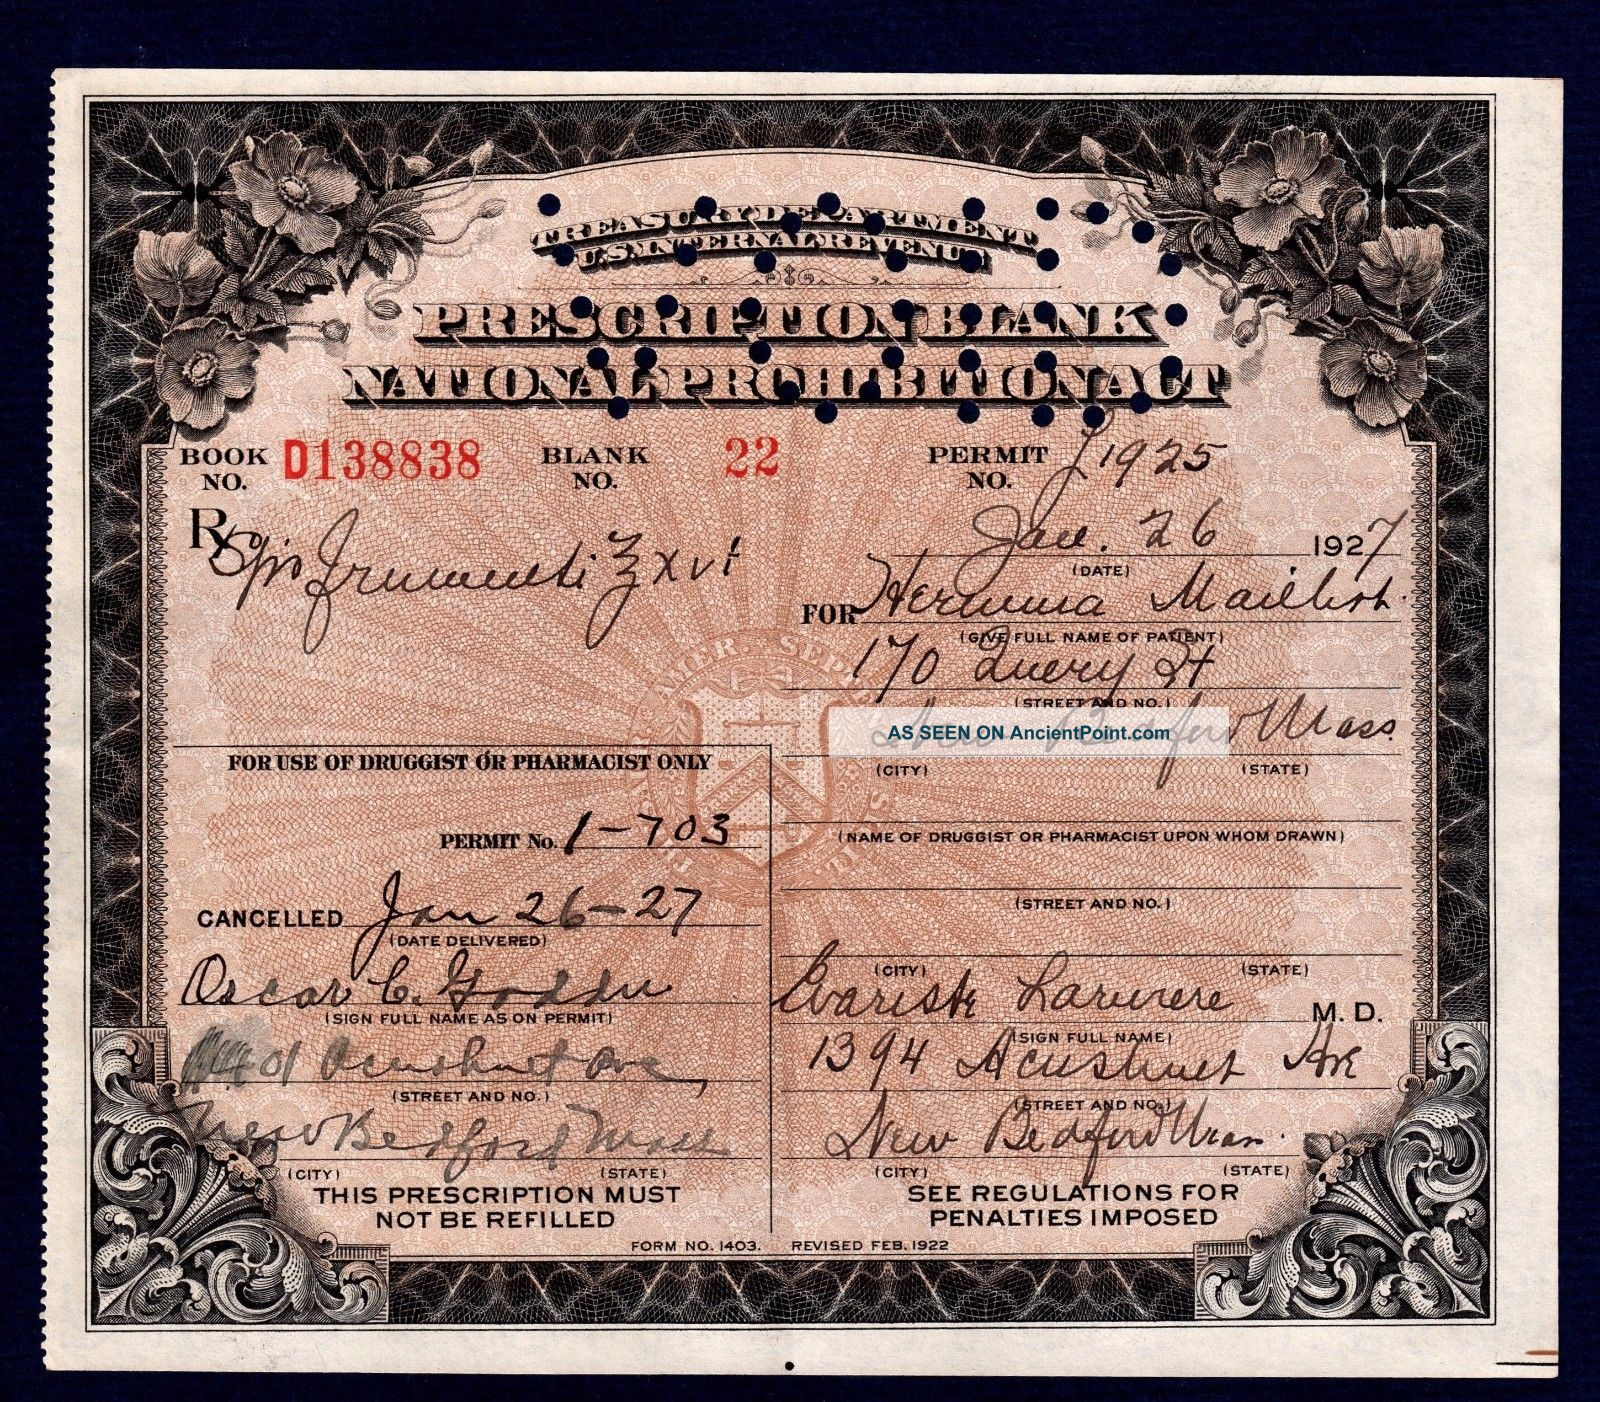 Prohibition Prescription Alcohol History Buff Antique Pharmacy Doctor Bar Ma Rx Other Medical Antiques photo